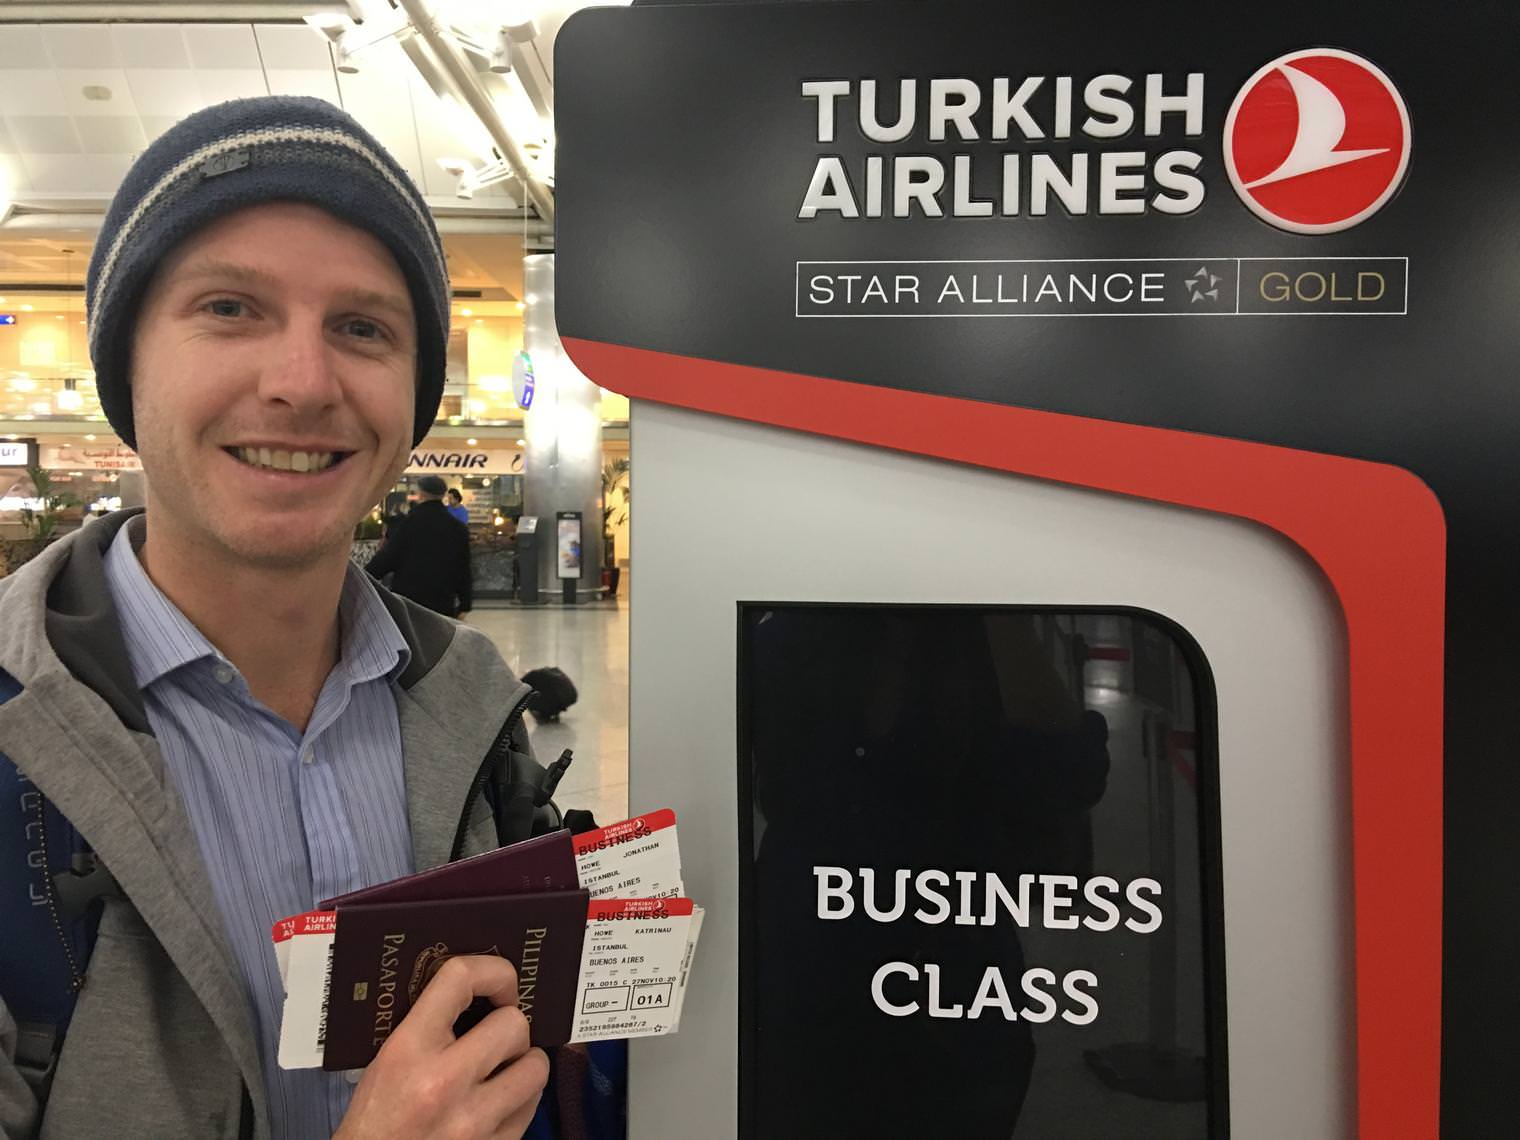 5-istanbul-trip-with-shangri-la-inflow-travel-and-turkish-airlines